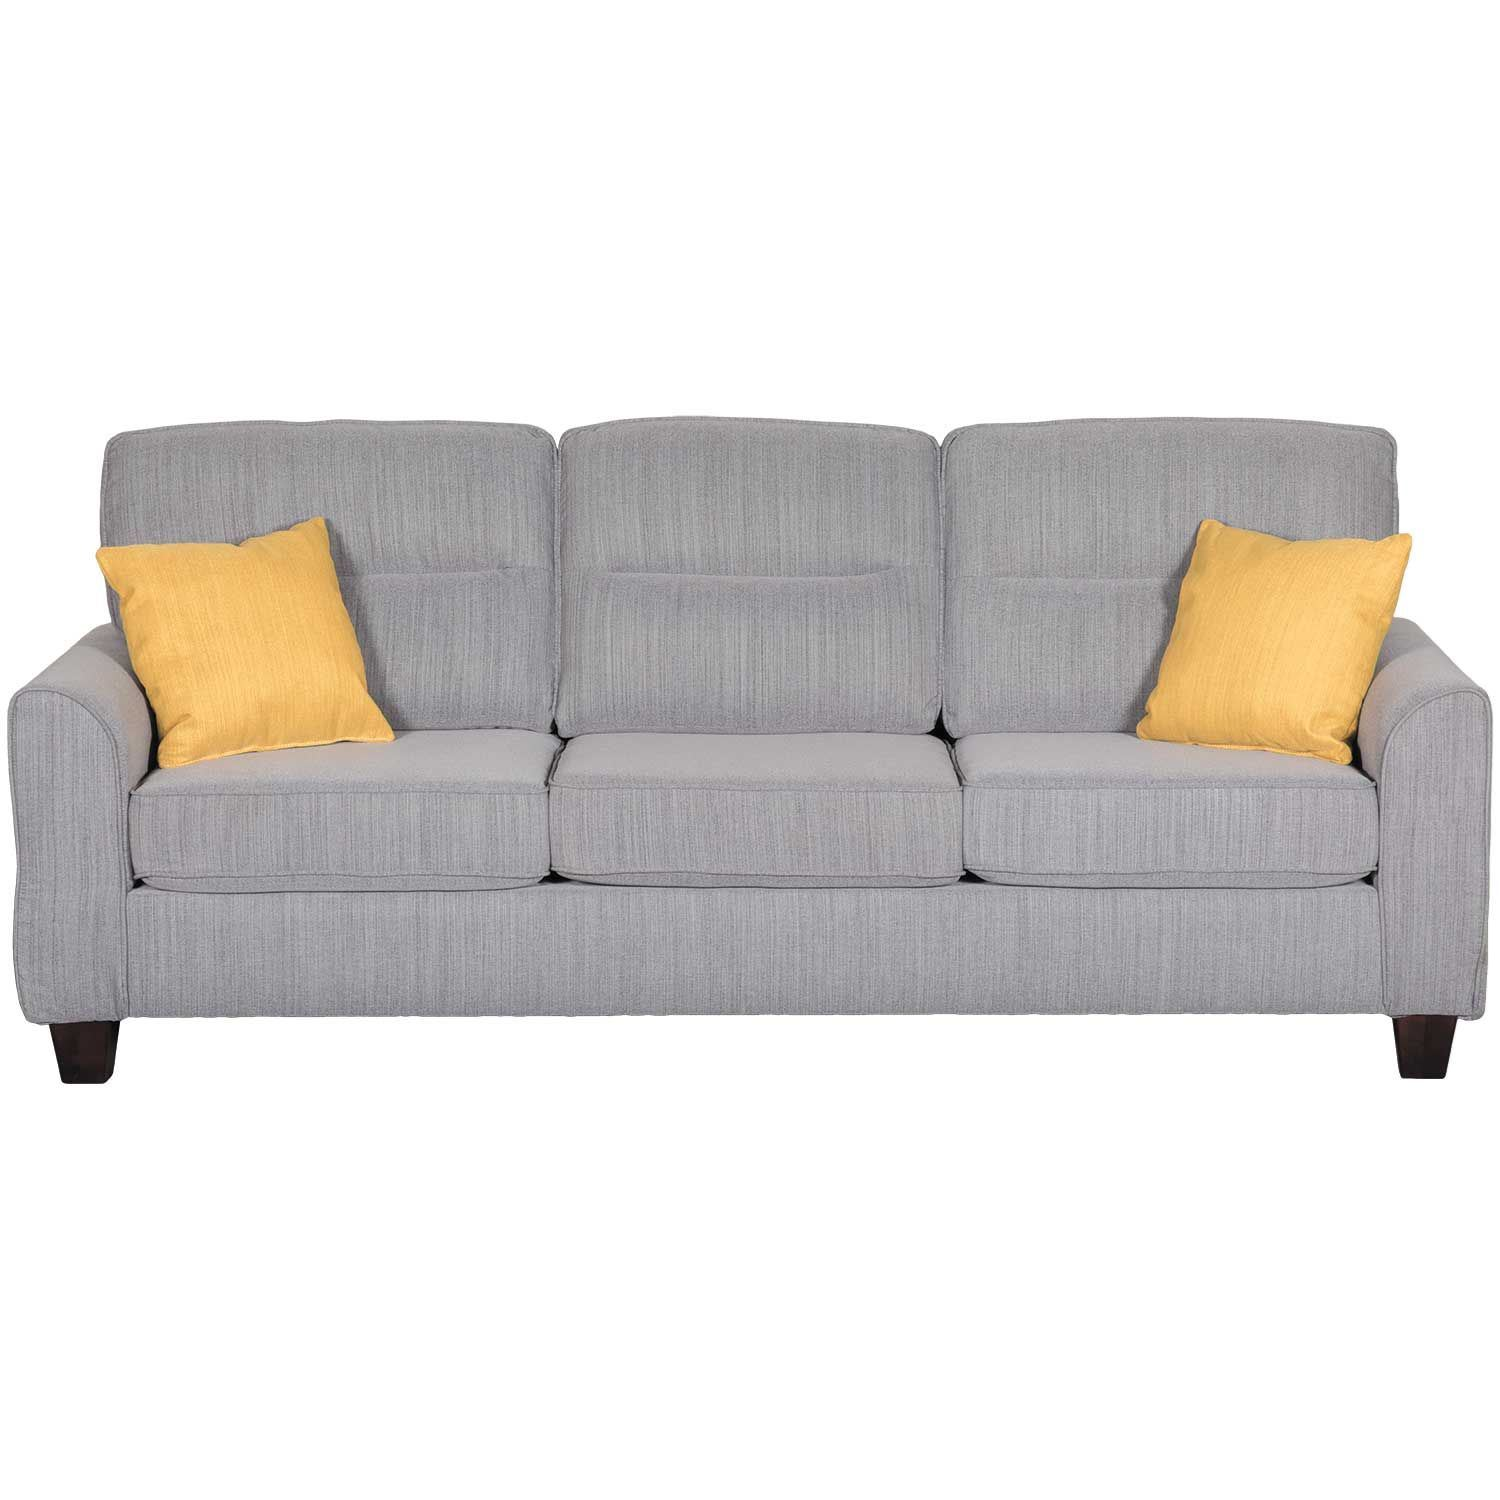 Magnificent Millennial Gray Sofa Kia Mlen815 Grs 803 Aico Amini Bralicious Painted Fabric Chair Ideas Braliciousco